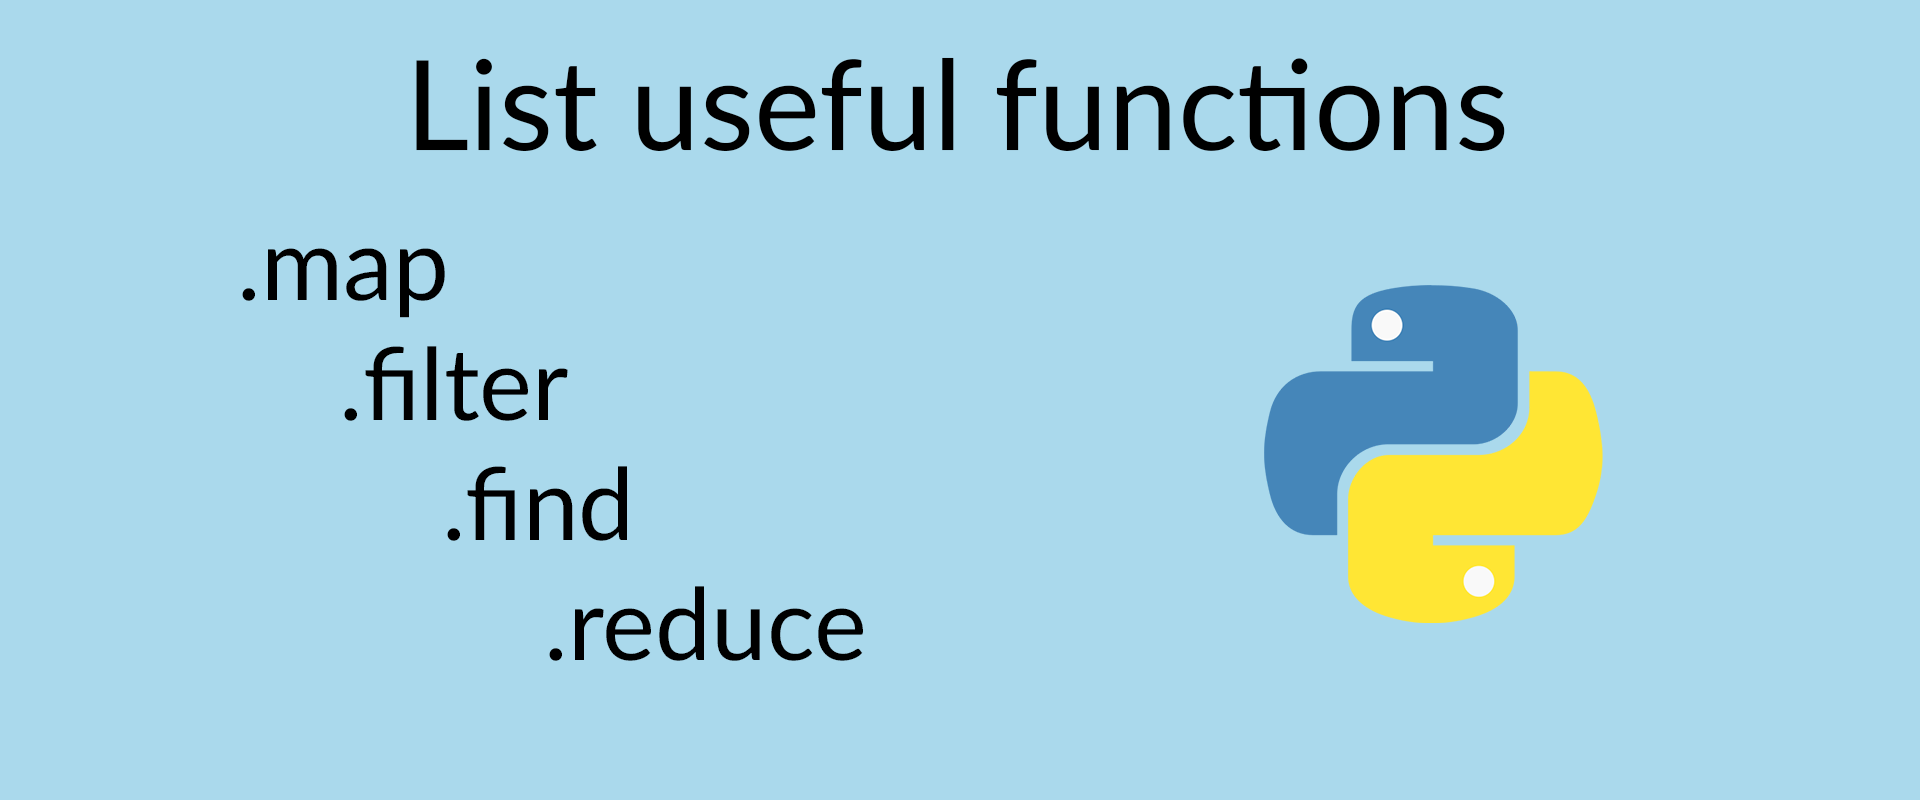 python-useful-list-functions-map-filter-find-and-reduce